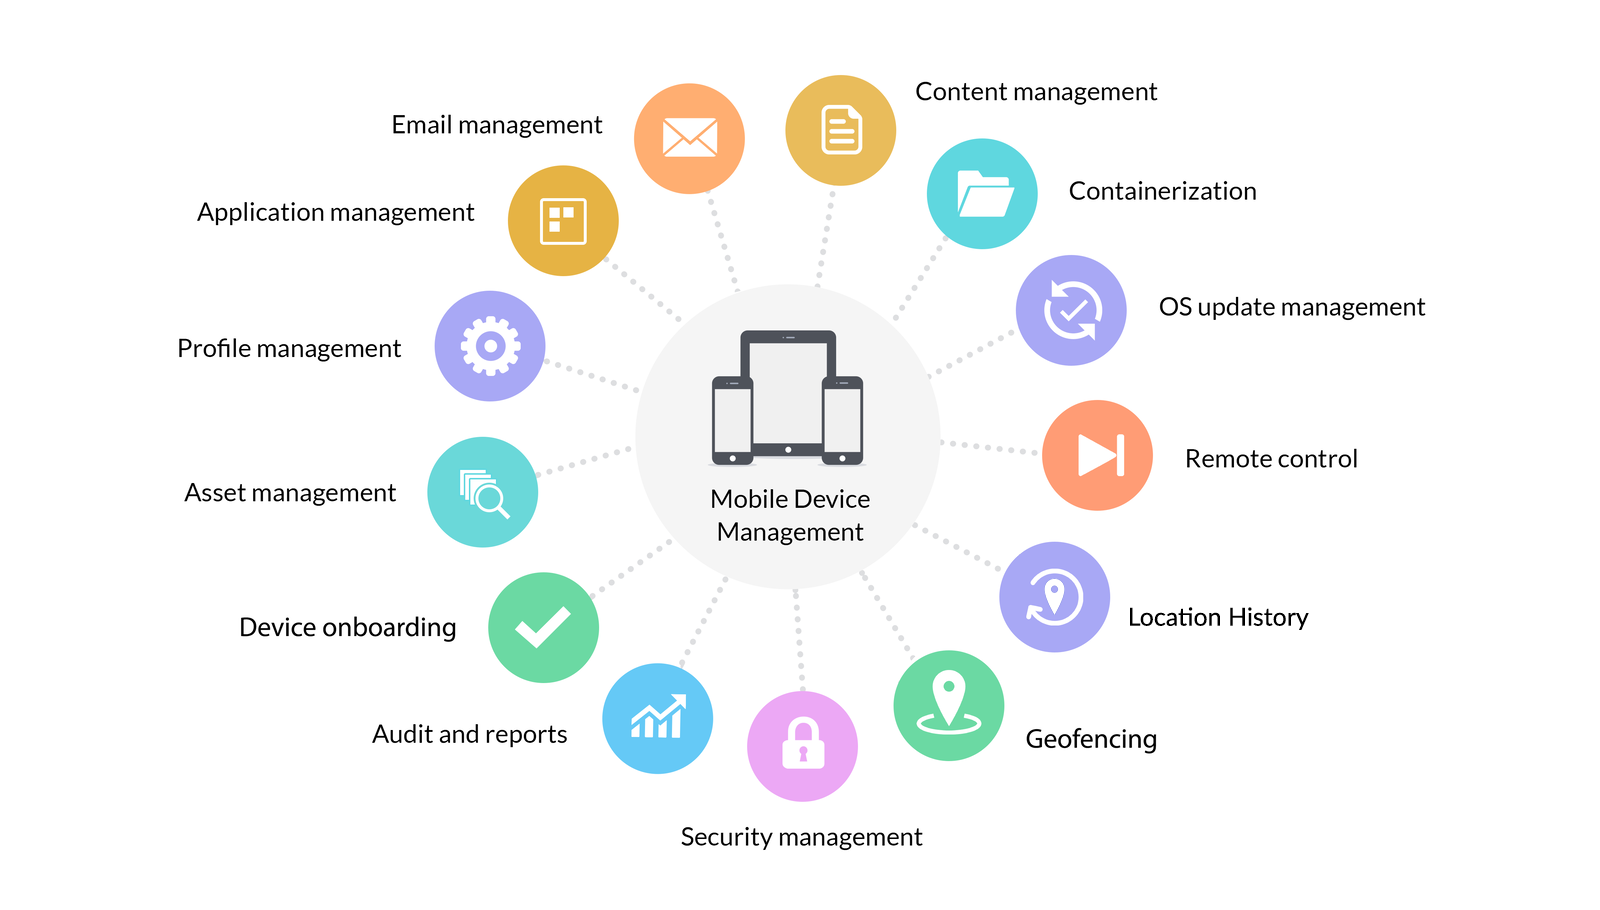 Mobile Device Management (MDM) | Secure and manage mobile devices